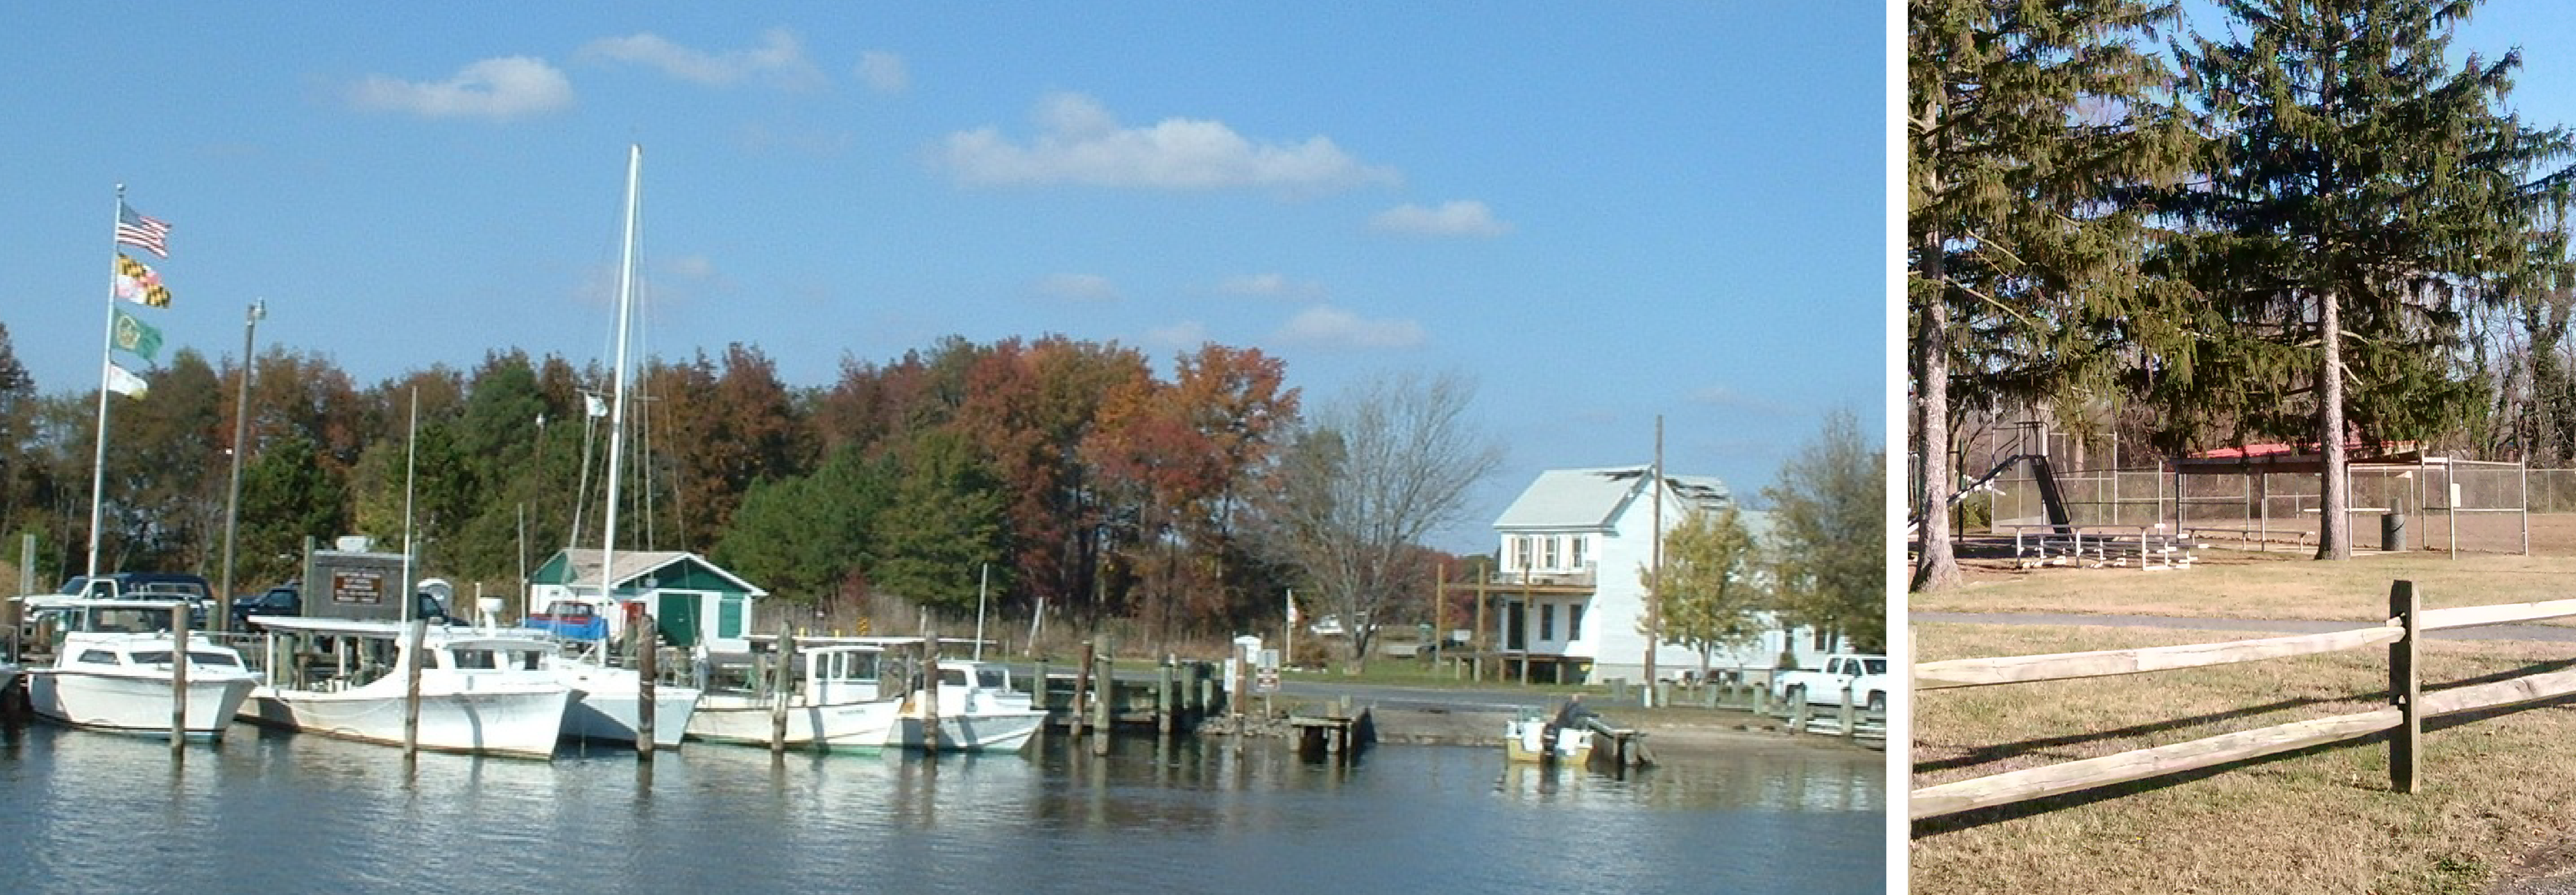 A pier with boats docked in Caroline County, Maryland, and a picture of a park fence.